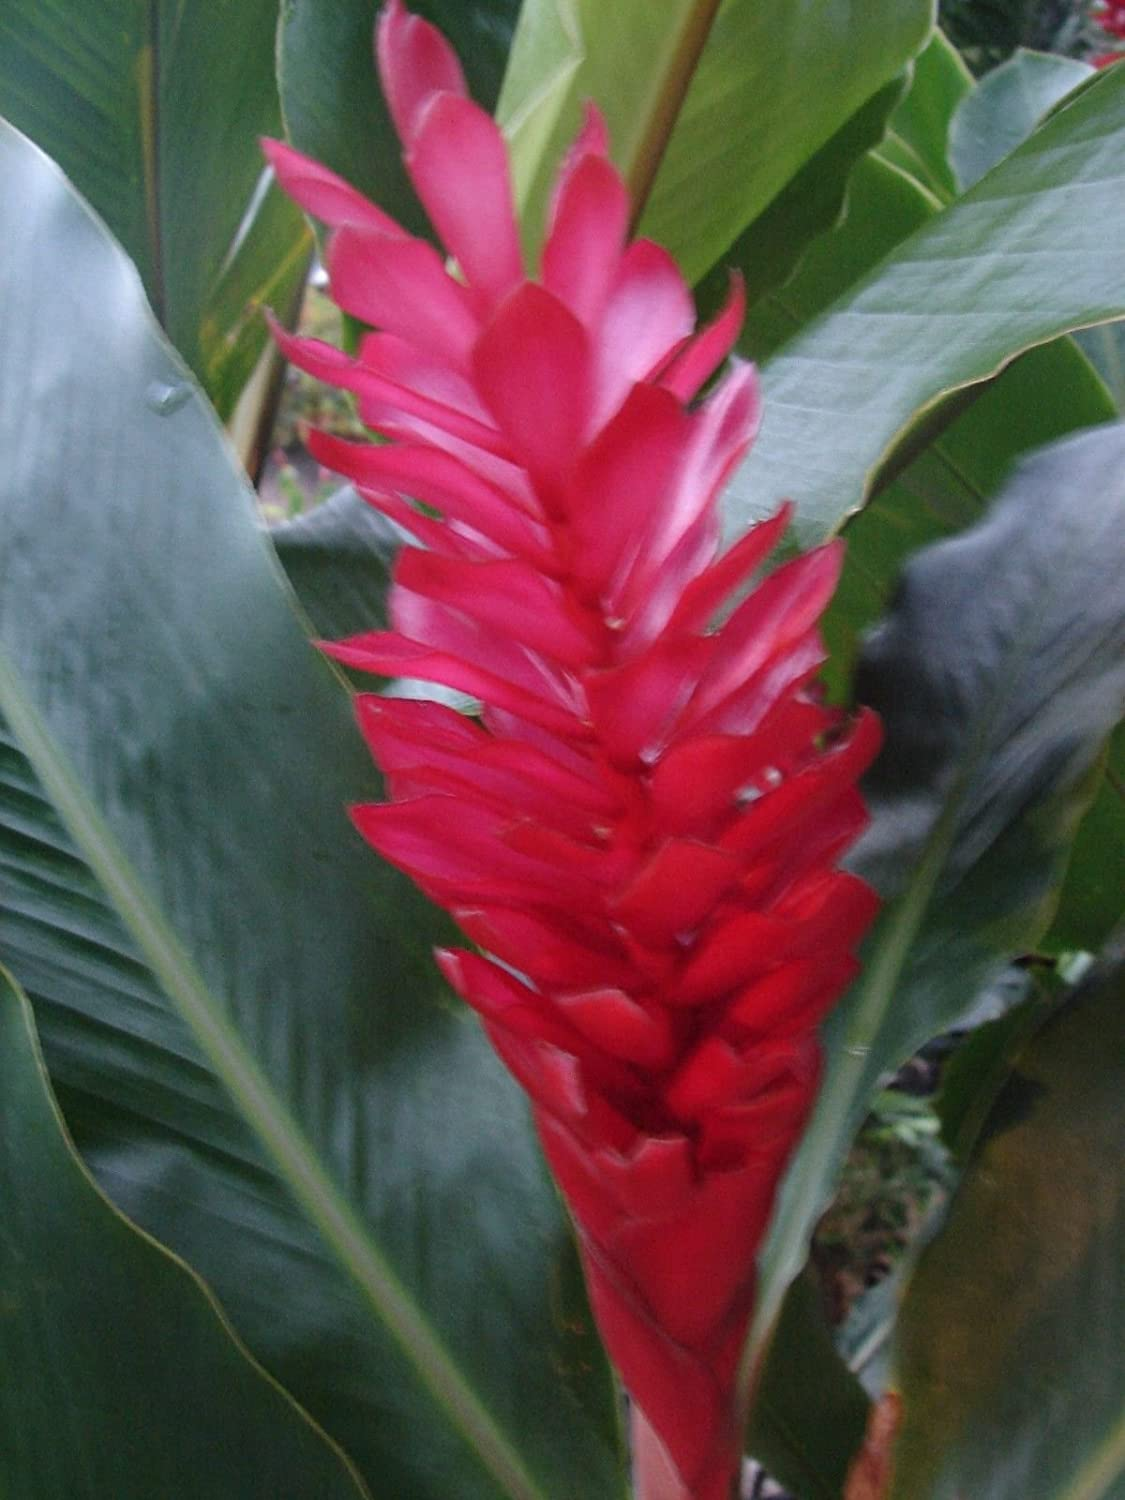 Amazon hawaiian red ginger alpinia purpurata not a rhizome amazon hawaiian red ginger alpinia purpurata not a rhizome this is small potted plant garden outdoor izmirmasajfo